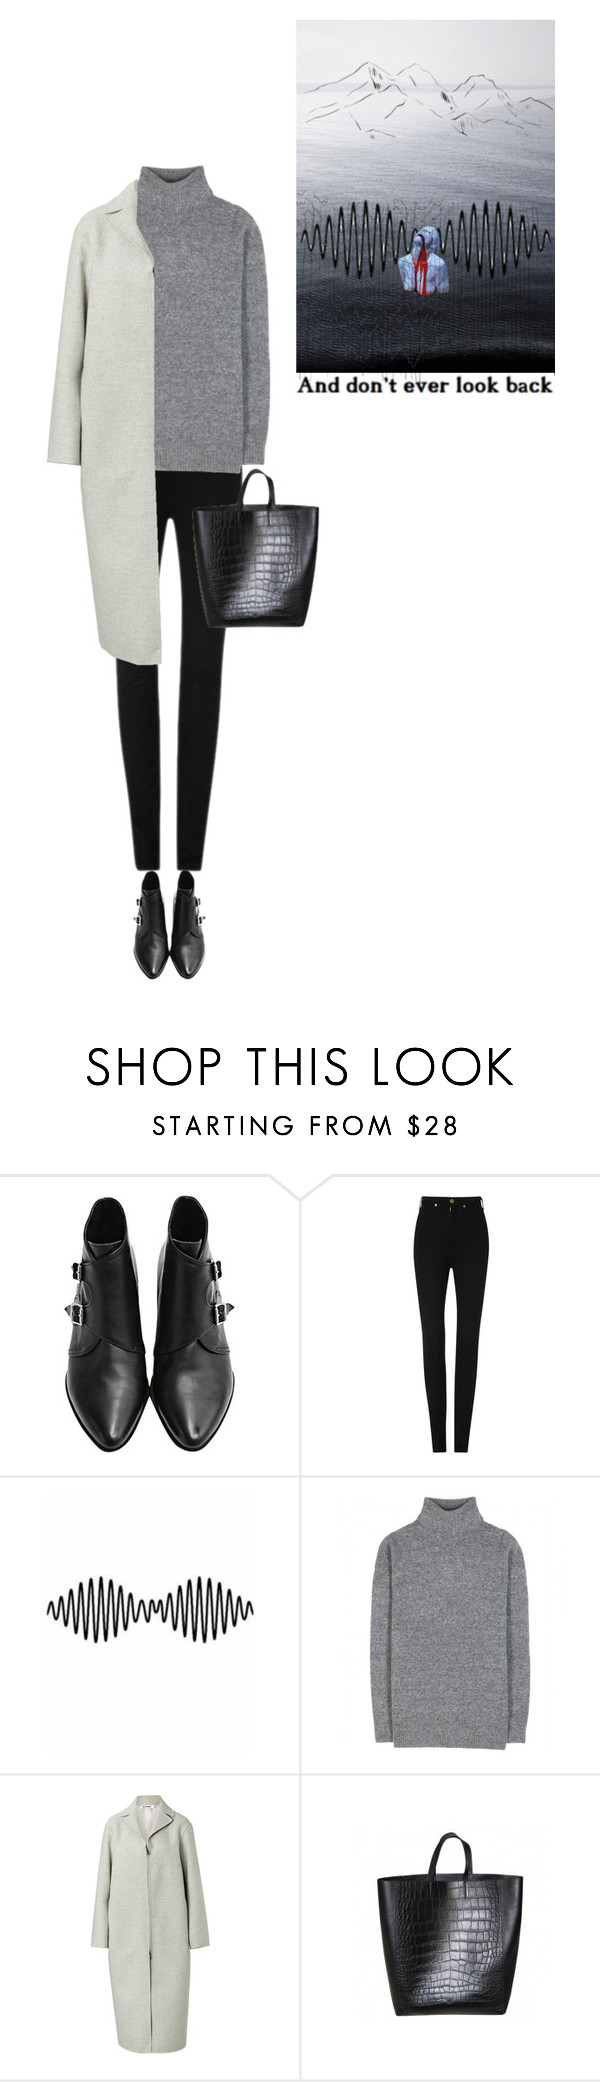 """And don't ever look back (tag)"" by kate-653 ❤ liked on Polyvore featuring Rodarte, Balenciaga and Jil Sander"